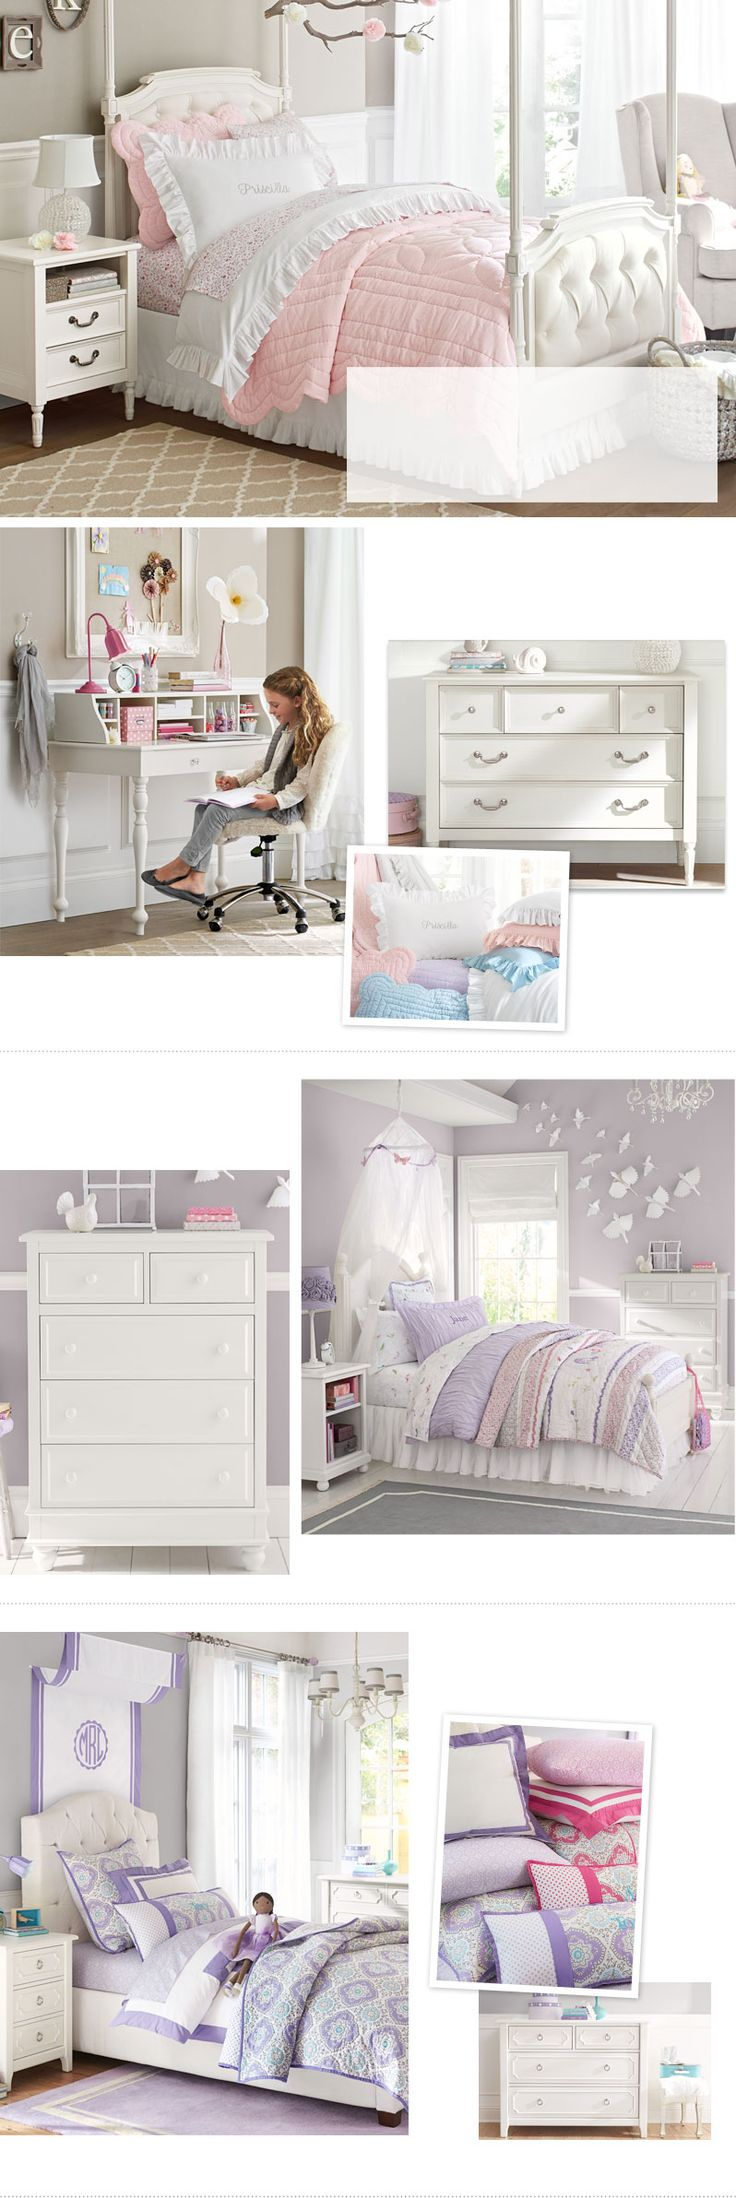 Bedrooms for girls purple and white - Girls Bedroom Ideas Girls Room Ideas Pottery Barn Kids